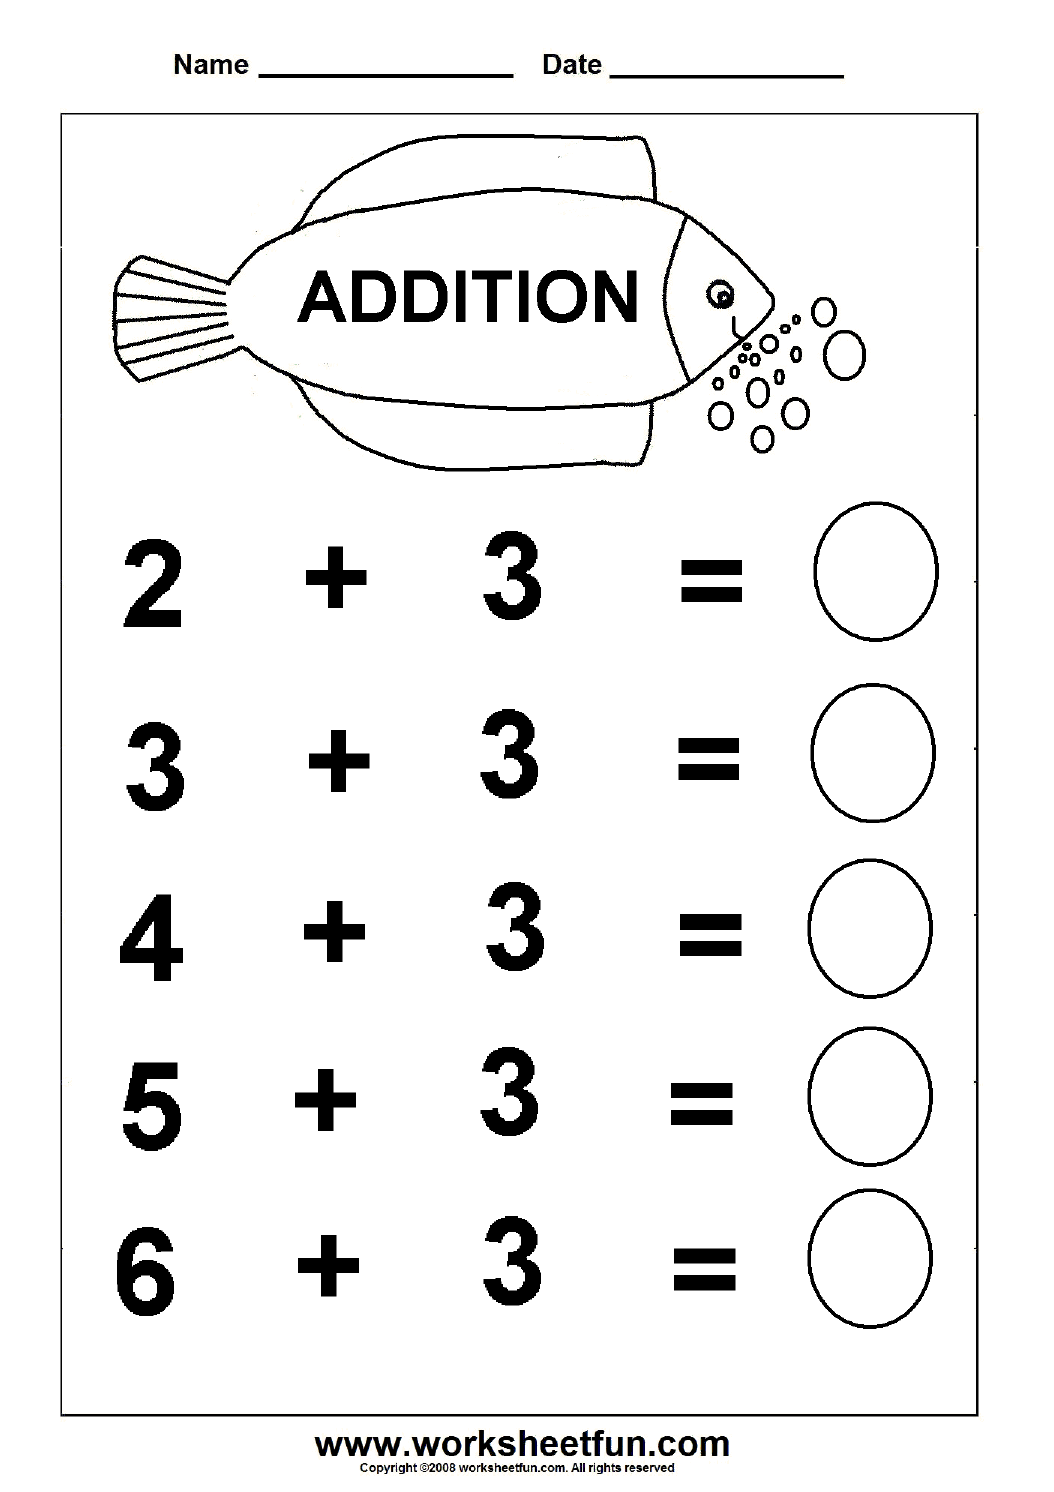 Worksheets Additions Worksheets beginner addition 6 kindergarten worksheets free subtraction worksheets